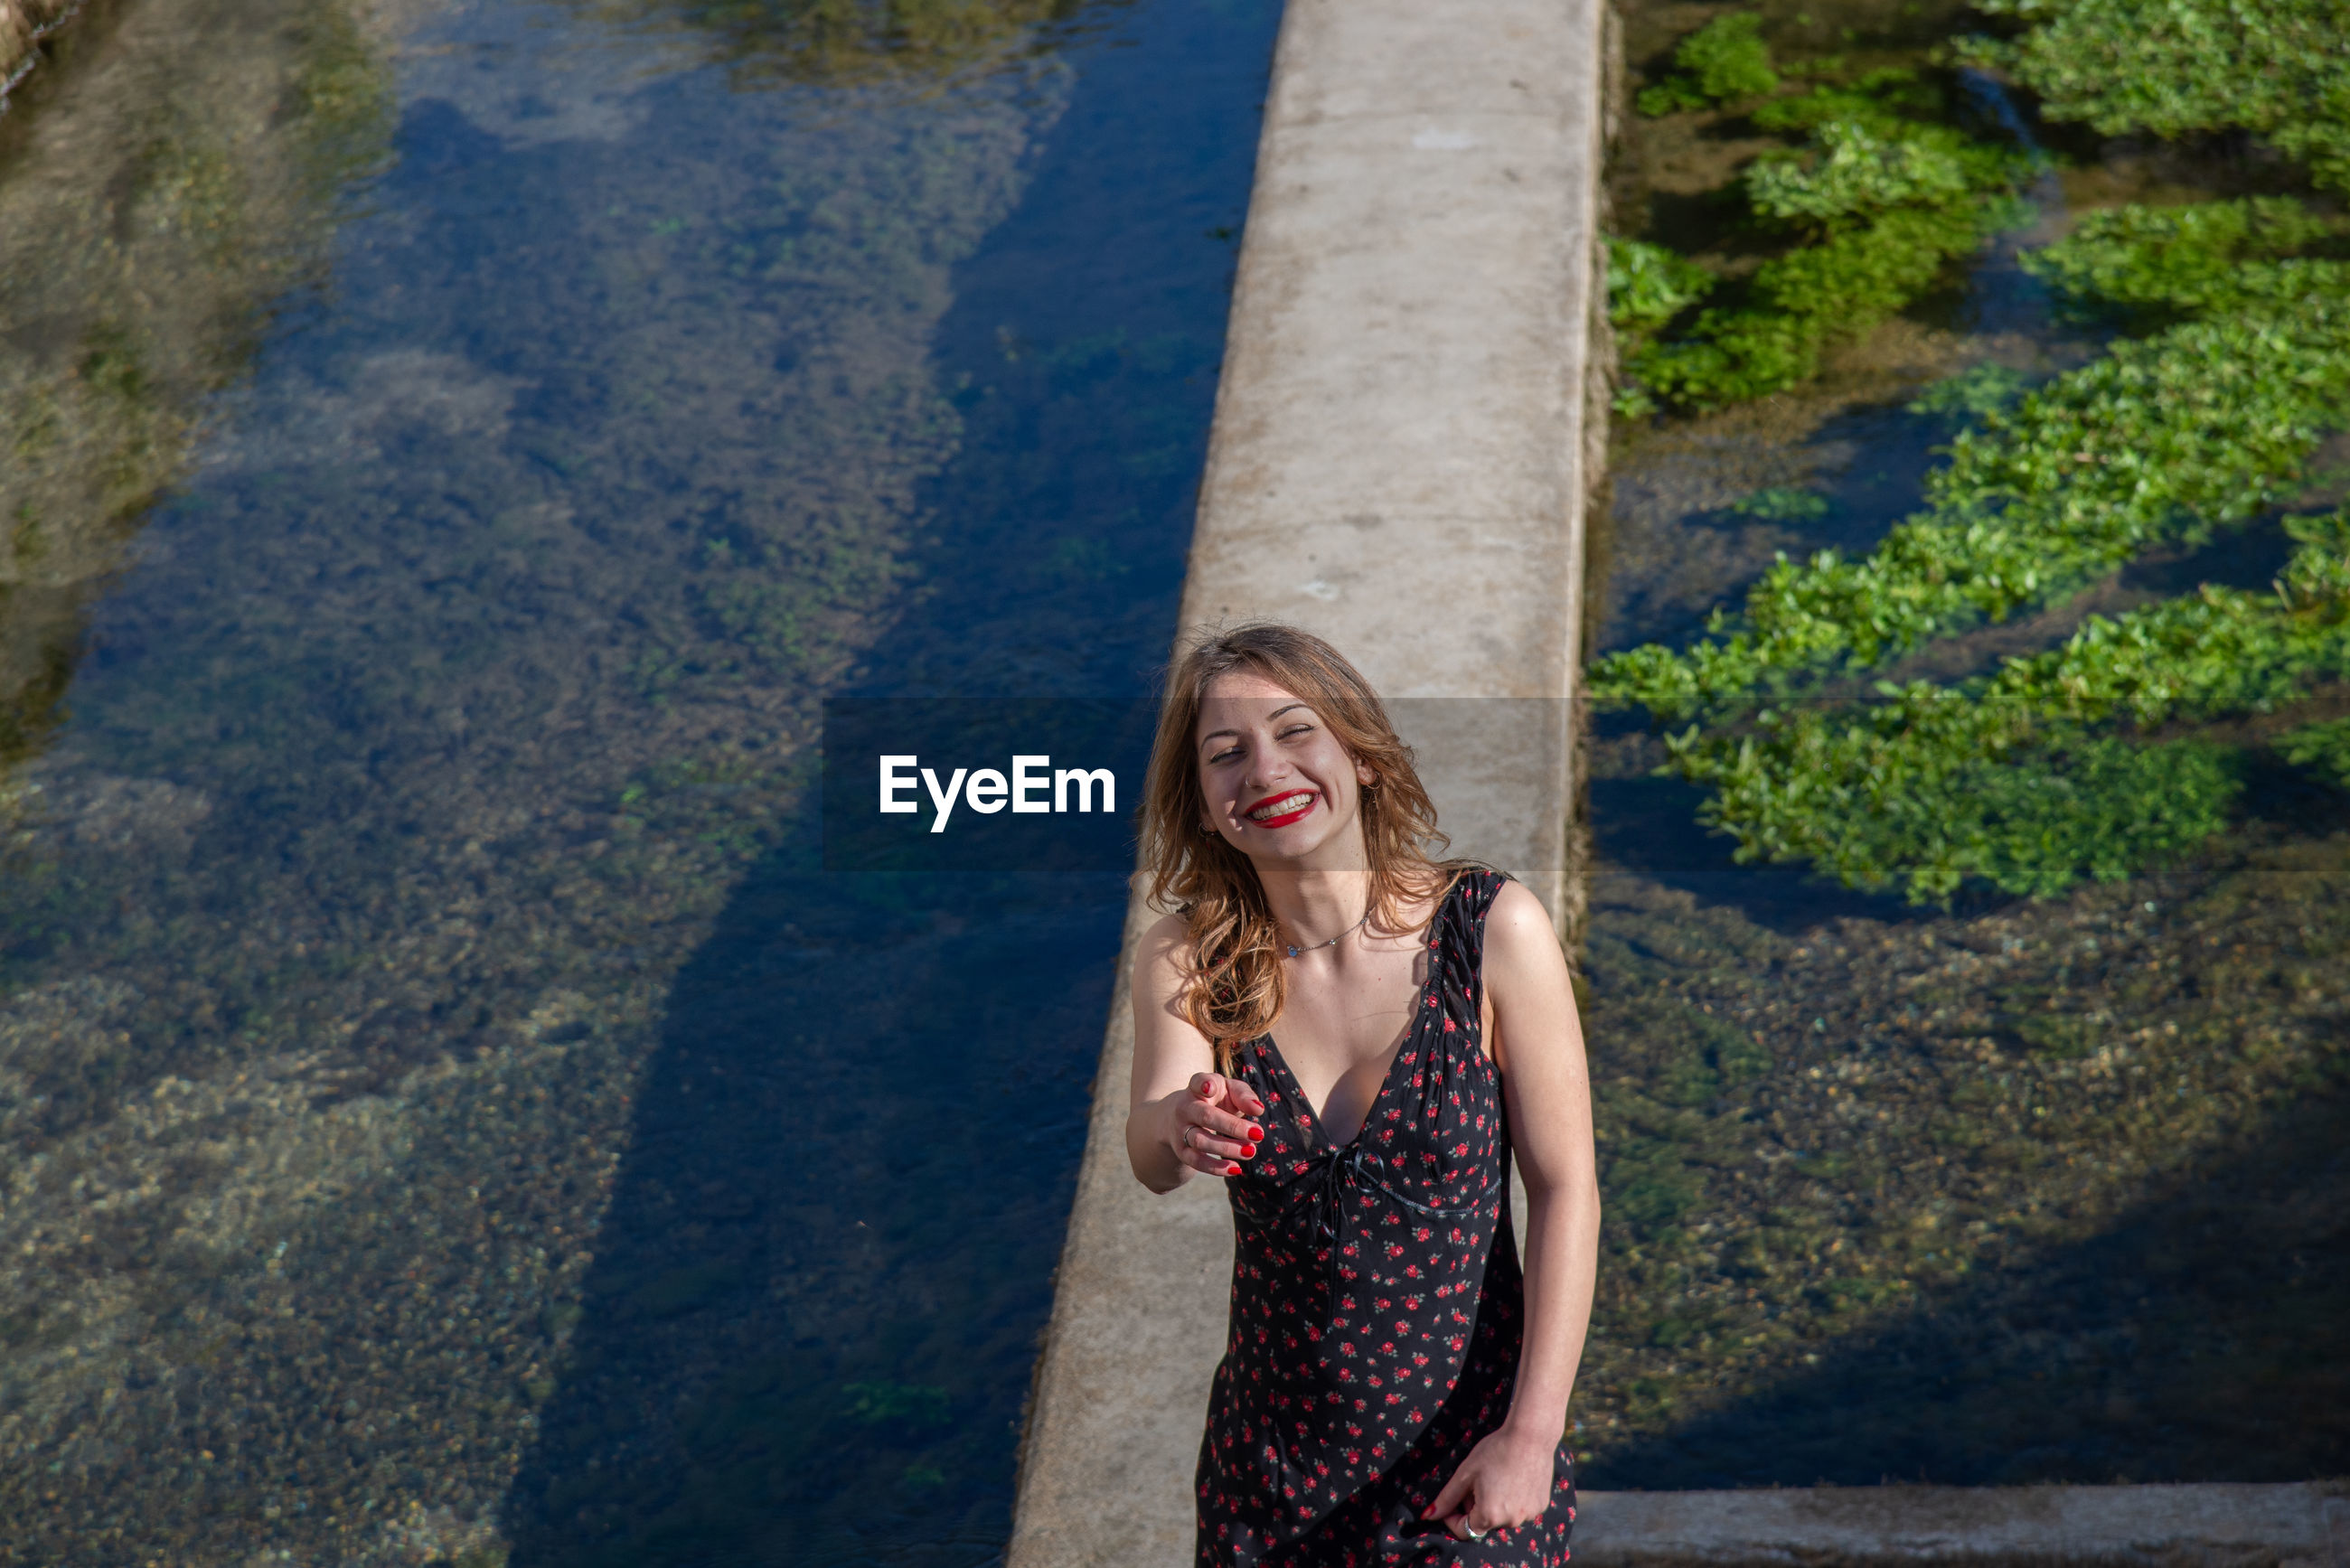 Smiling young woman pointing while standing by canal on retaining wall